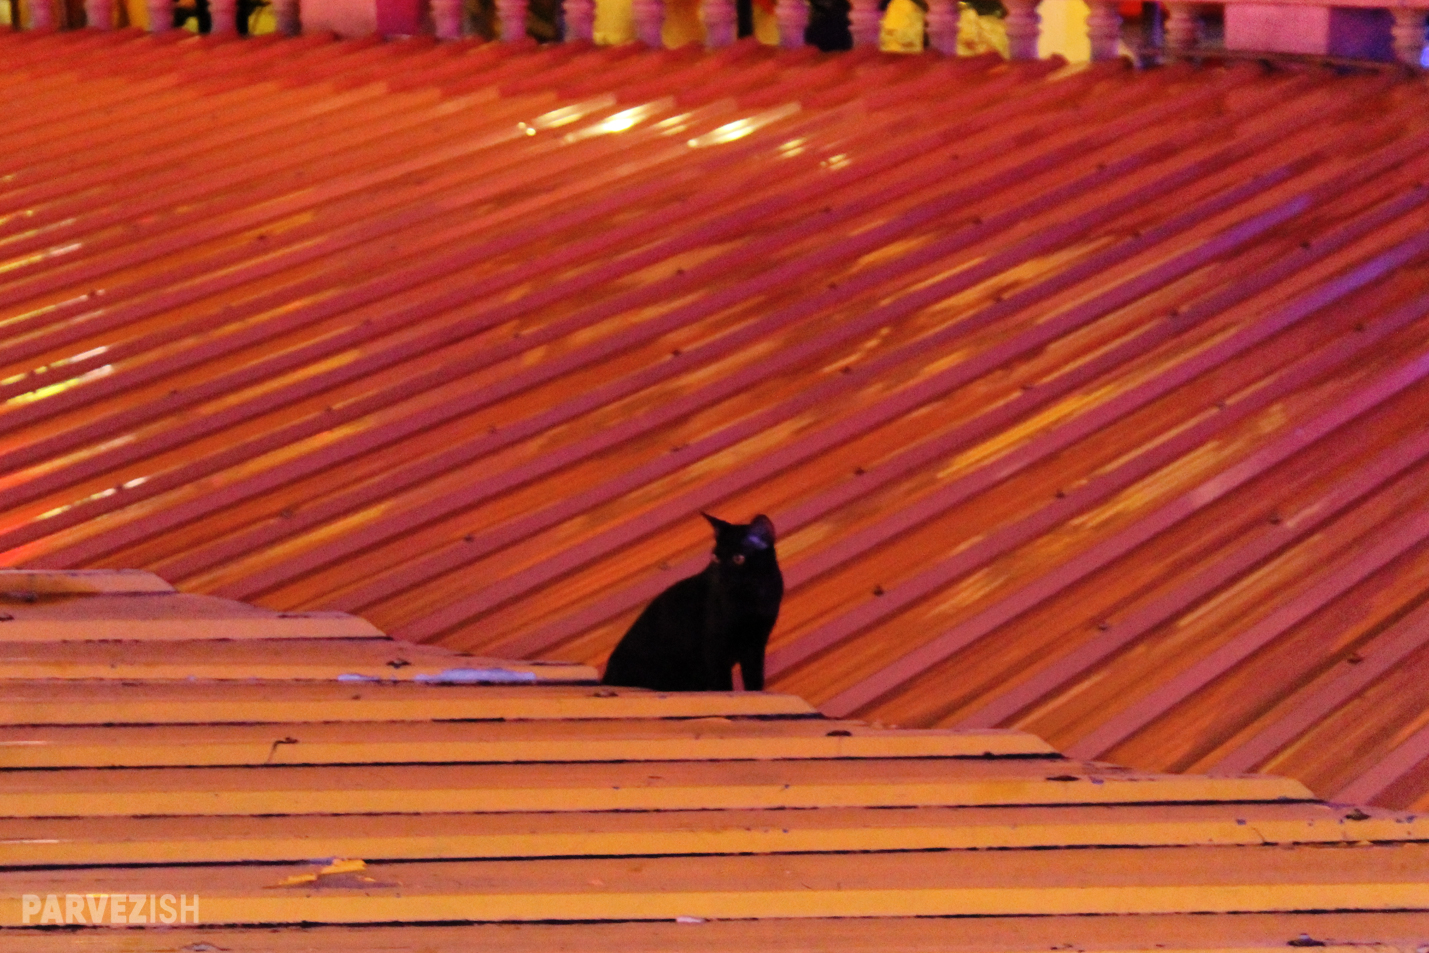 A Black Cat on a Tin Roof Somewhere in Bangkok